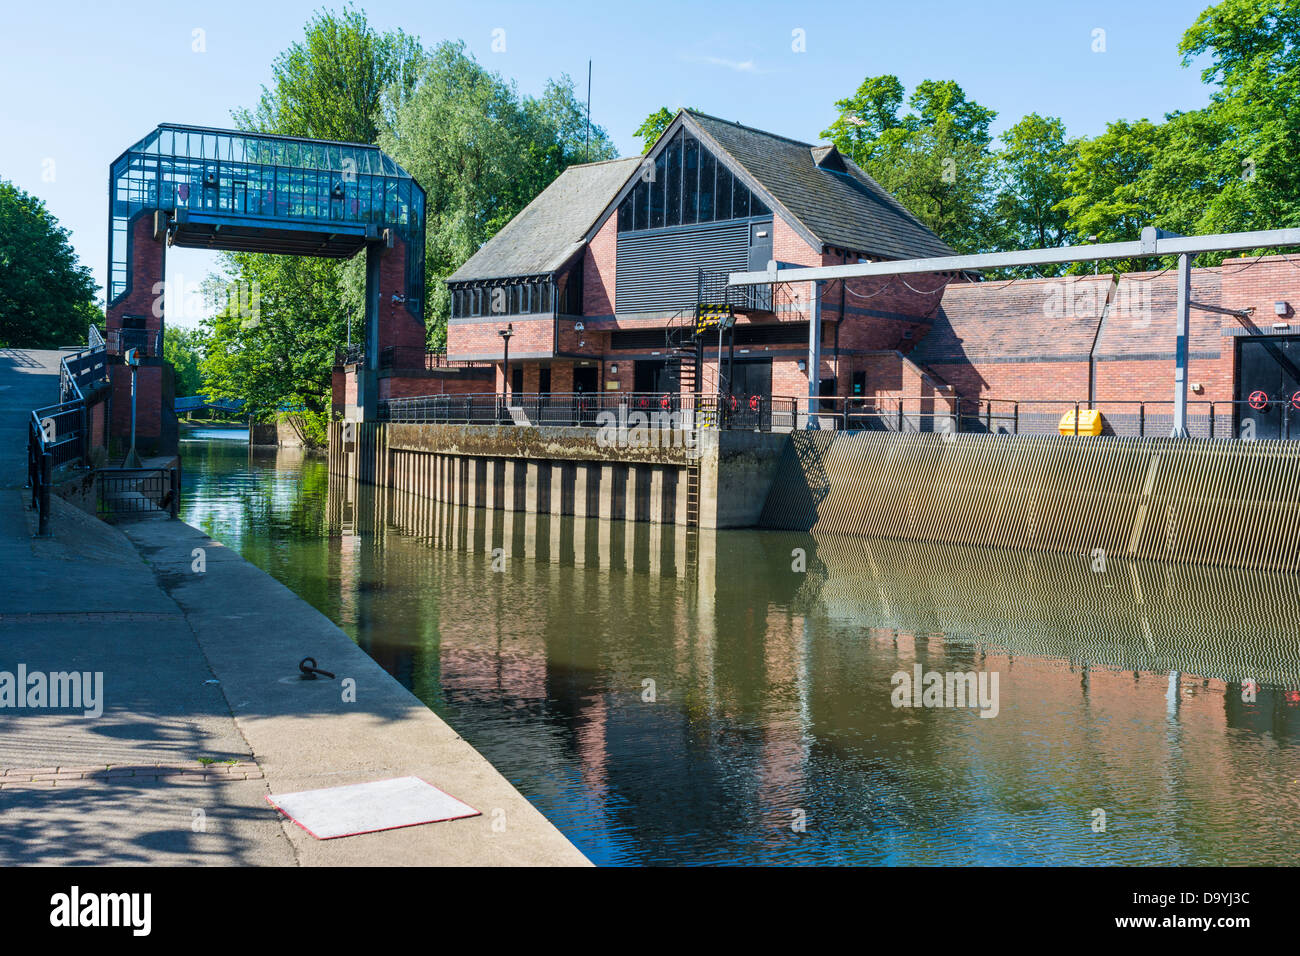 Automated Flood barrier on the river Foss, Castle Mills Lock, York, England, June - Stock Image